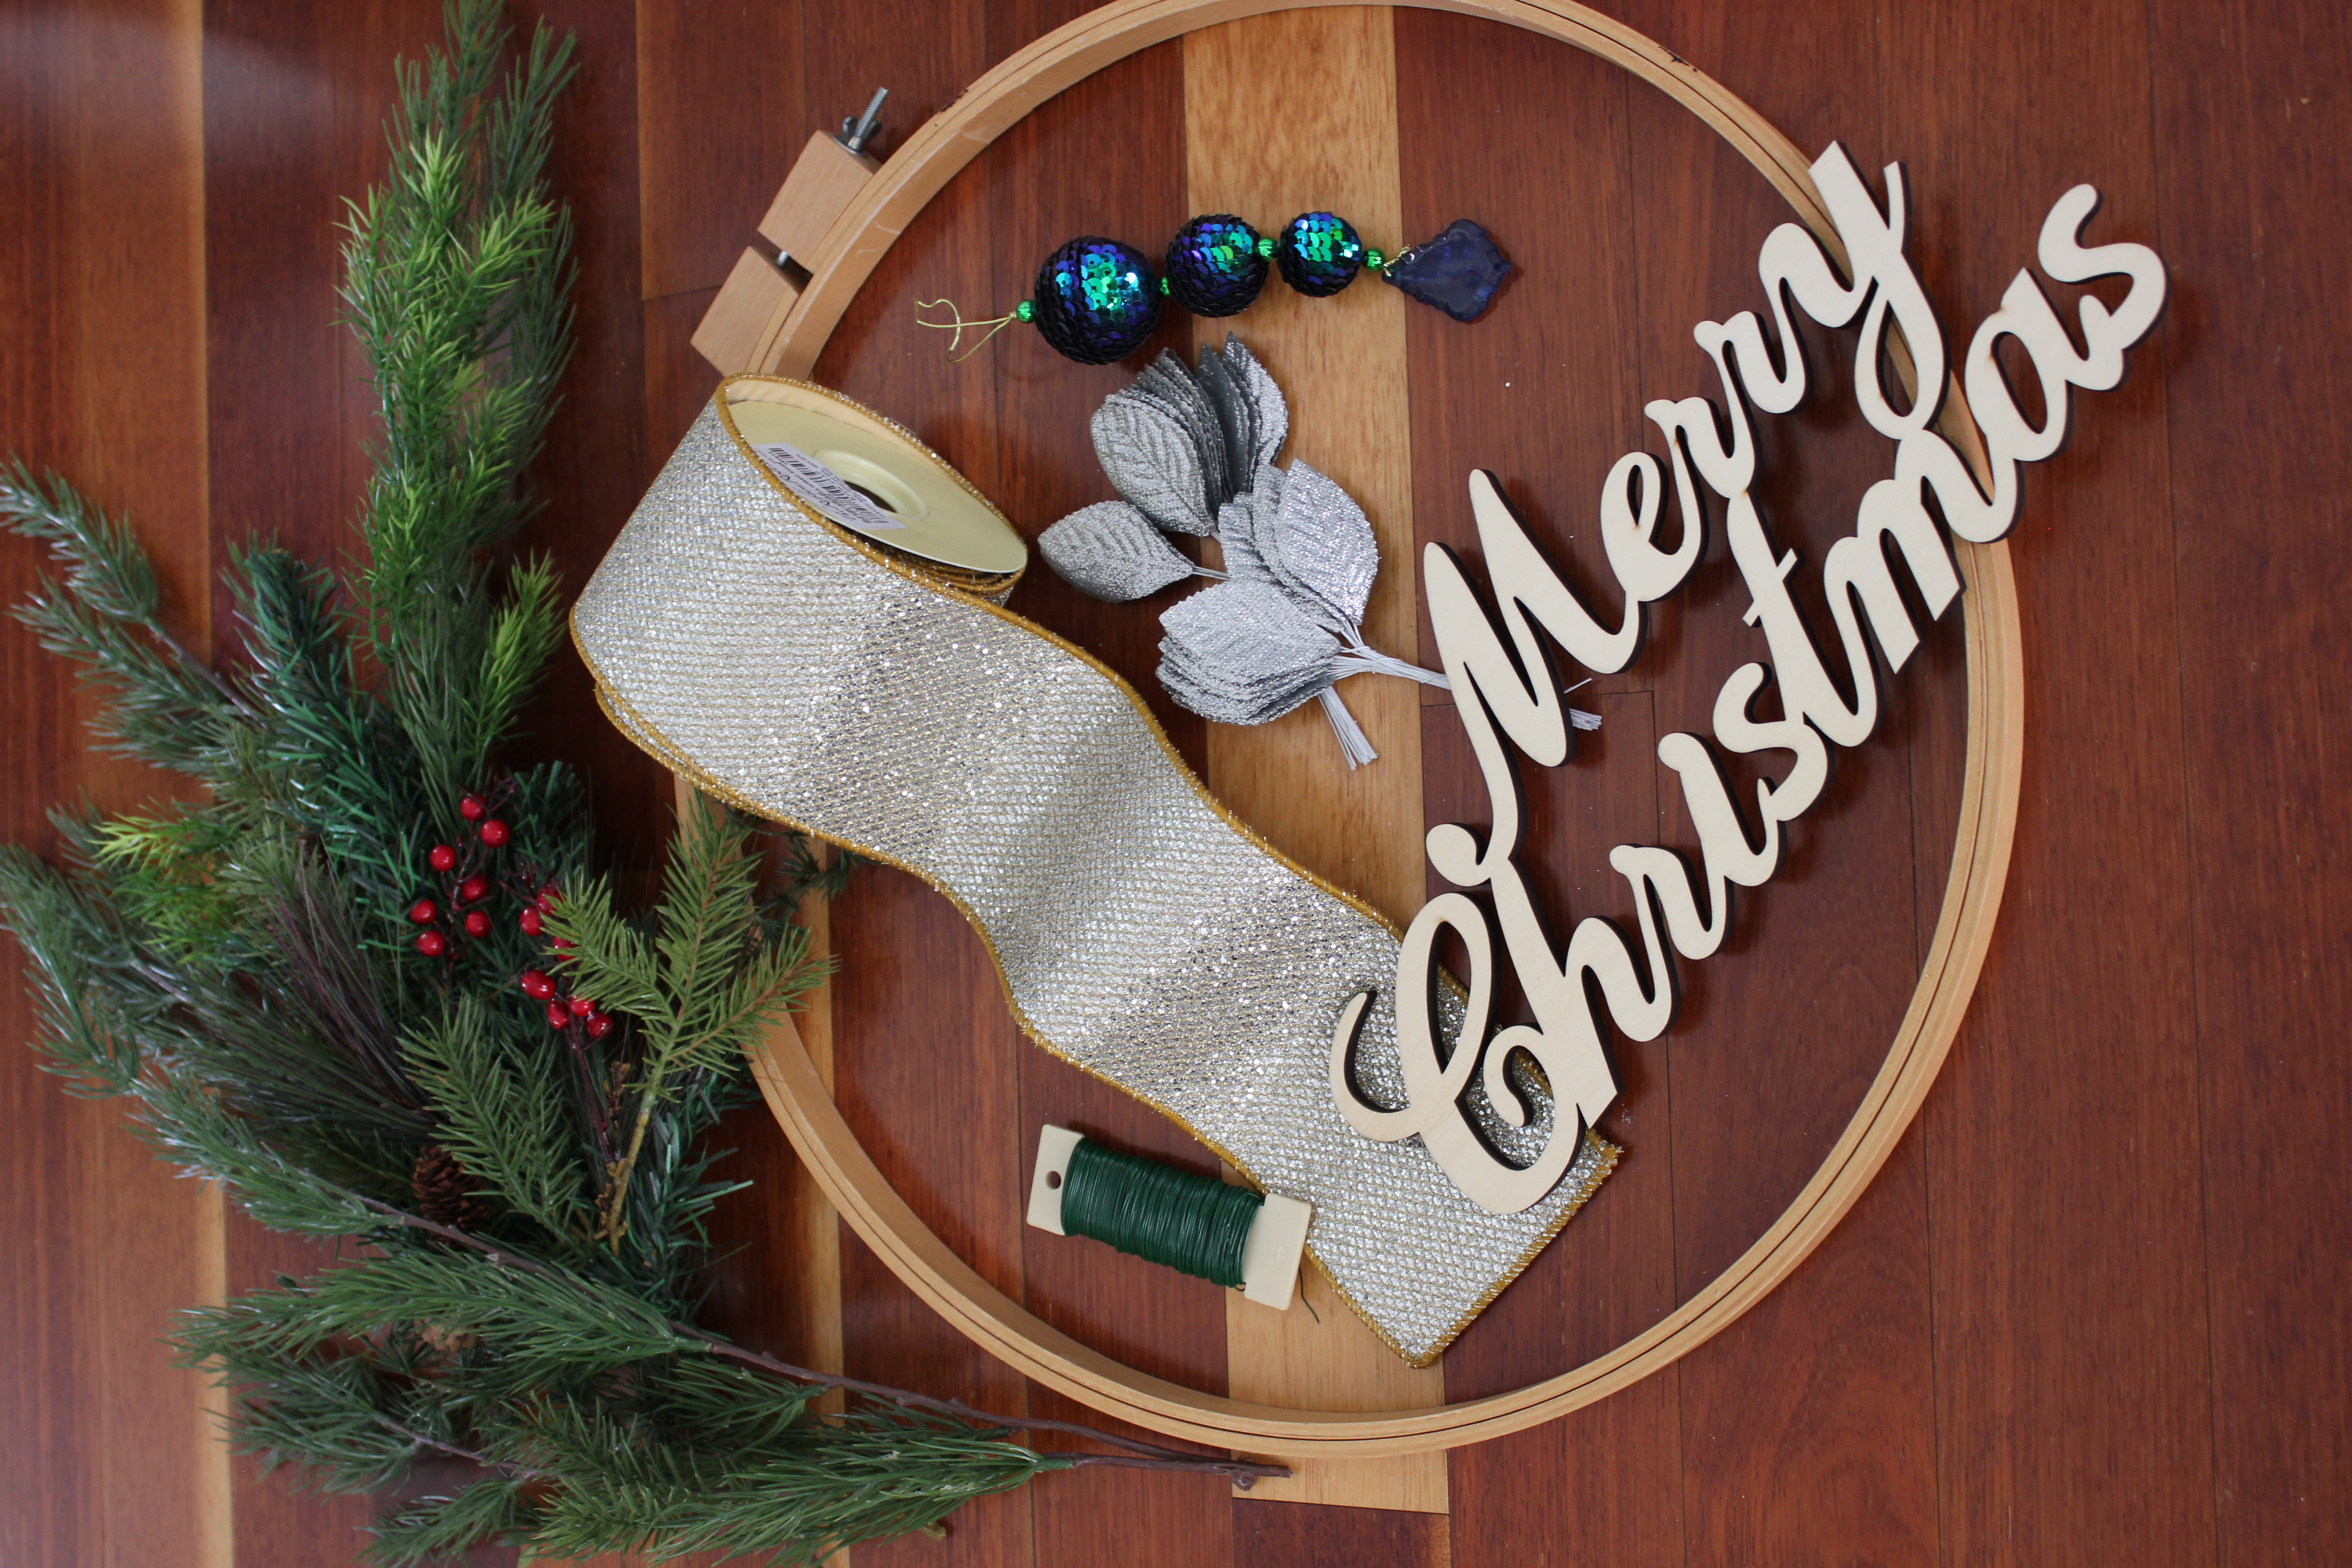 Christmas Embroidery Hoop Wreath.Embroidery Hoop Ribbon Christmas Wreath The Ribbon Roll Blog